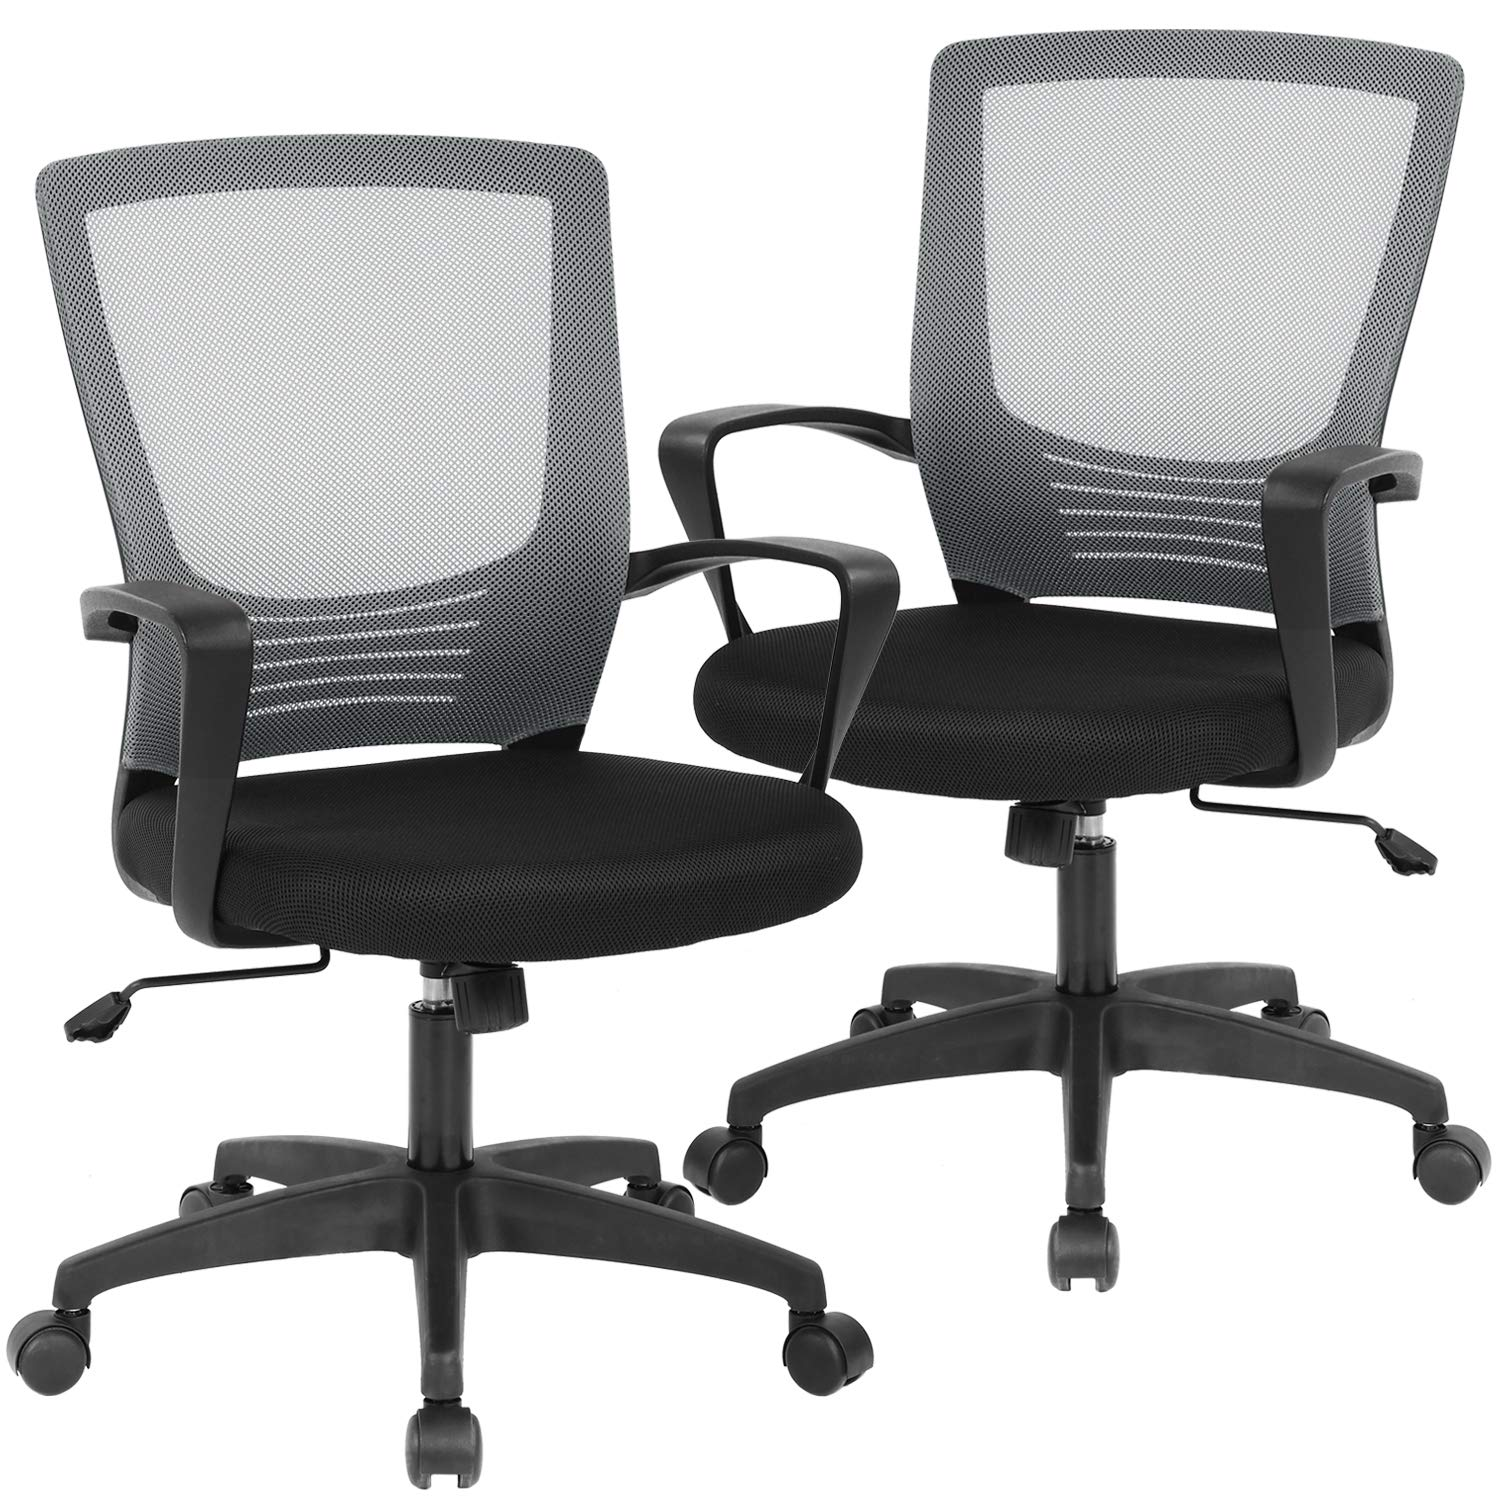 Office Chair Desk Chair Computer Chair Executive Rolling Swivel Chair Lumbar Support Task Mesh Chair for Back Pain, 2 Pack